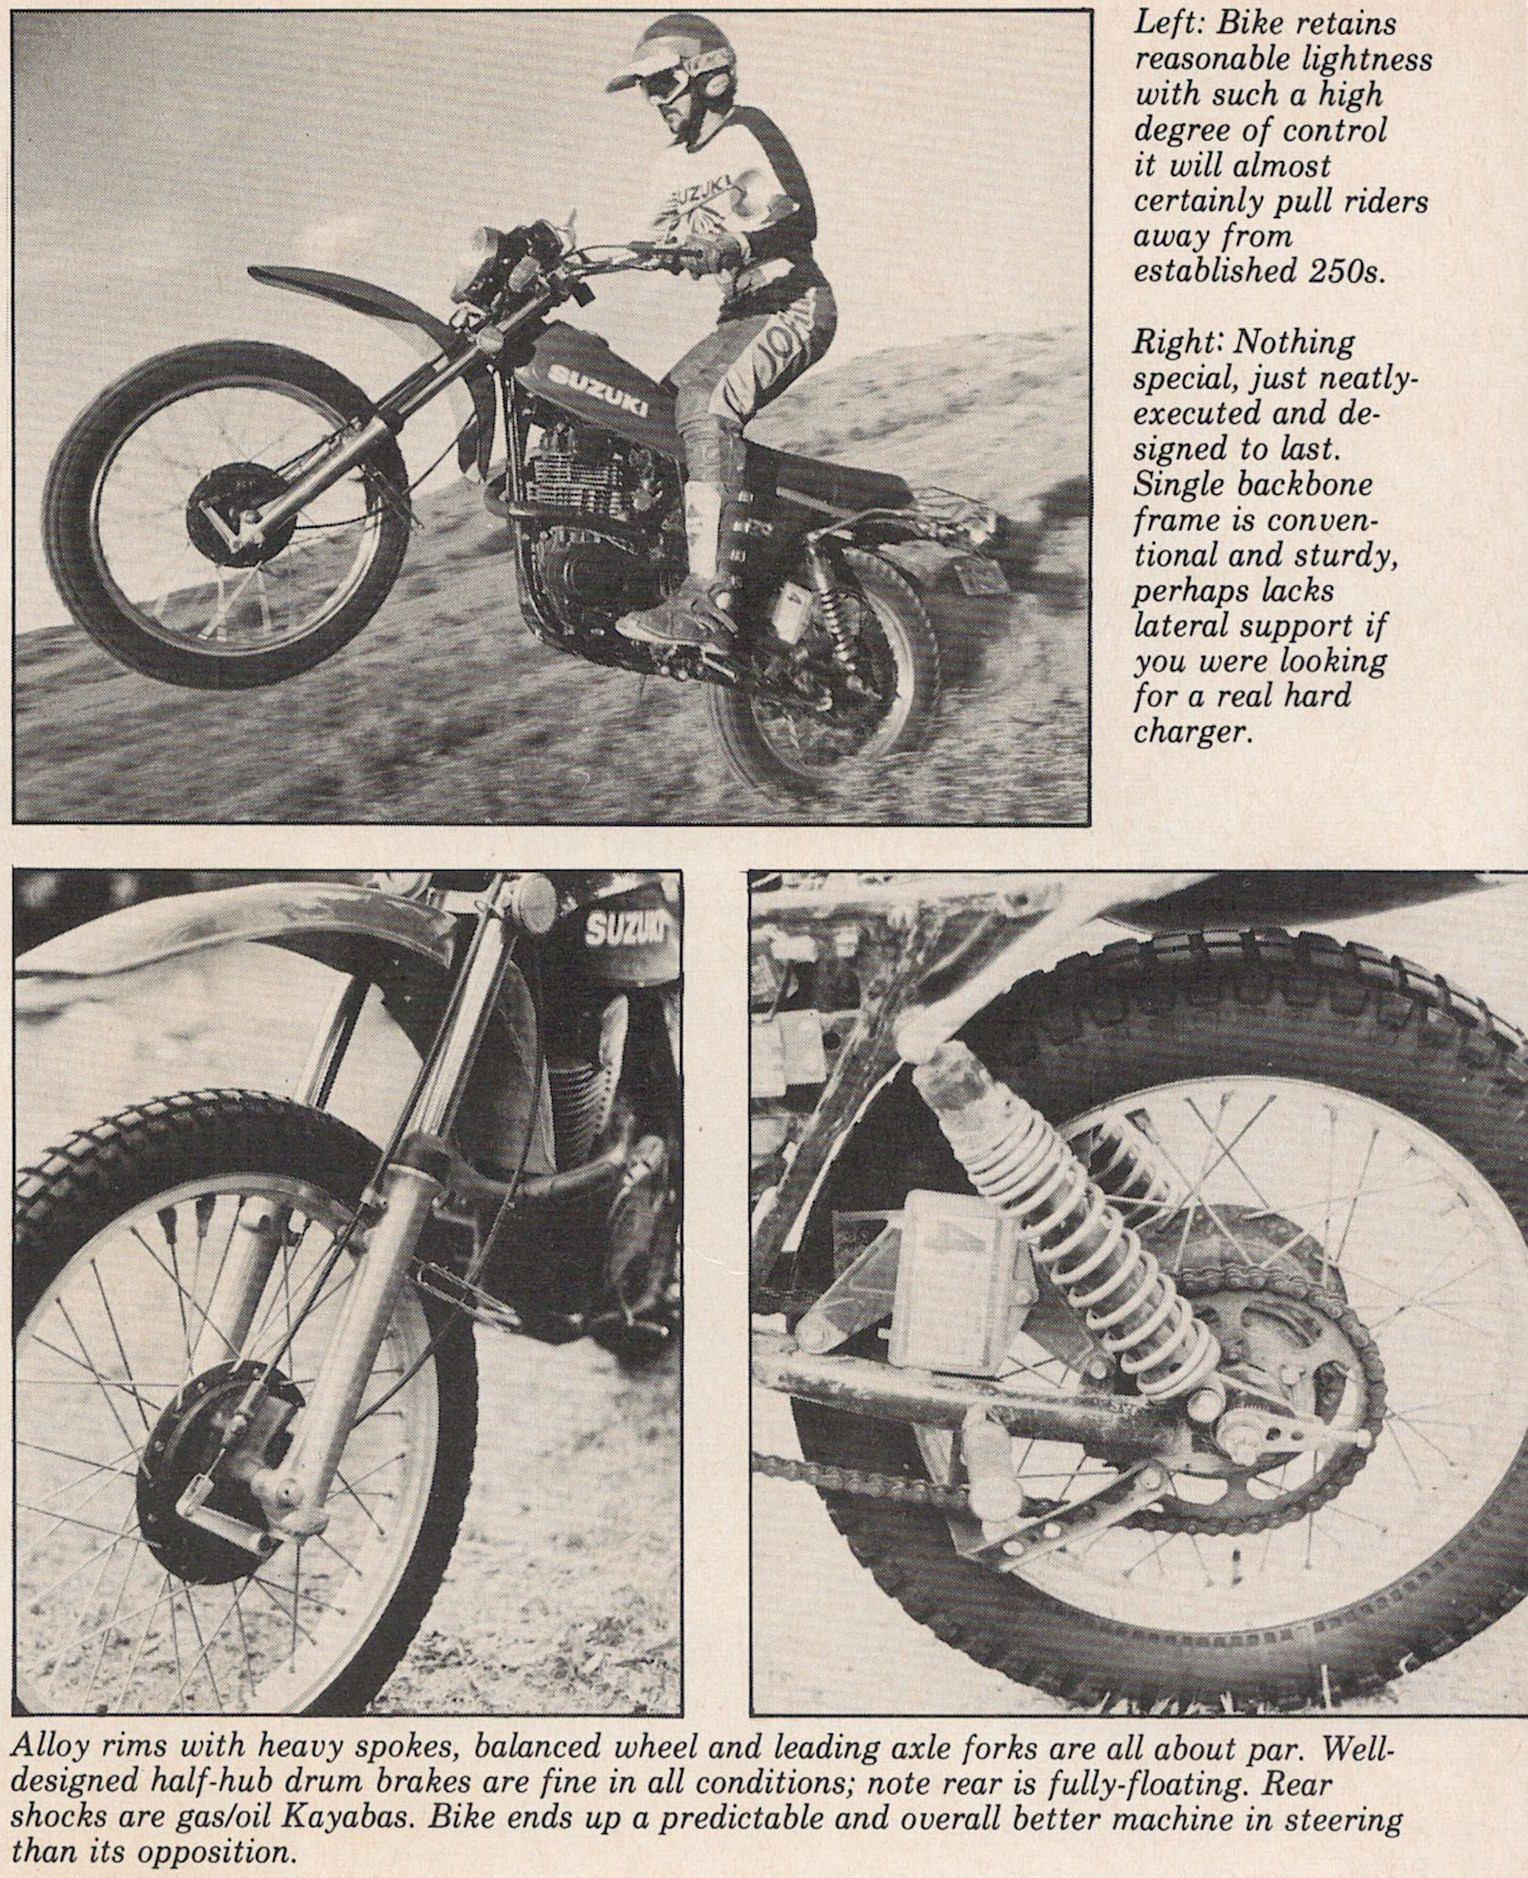 Suzuki sp370 1979 vintage road test article removed from australian suzuki sp370 1979 vintage road test article removed from australian magazine by vintagemotorcyclesoz on etsy fandeluxe Choice Image